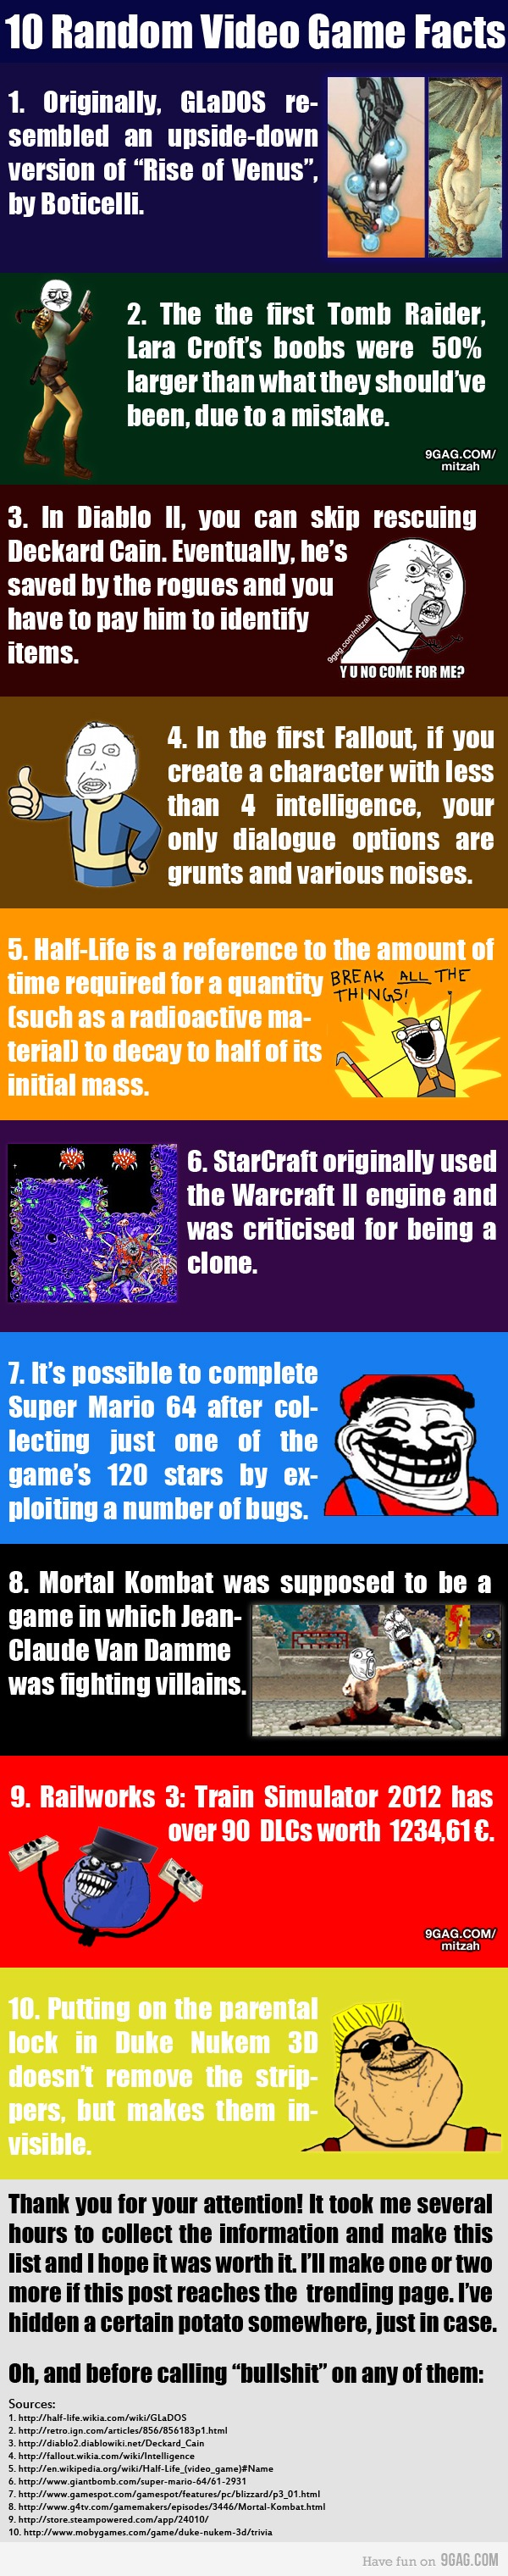 10 True random video game facts Video game facts, Video